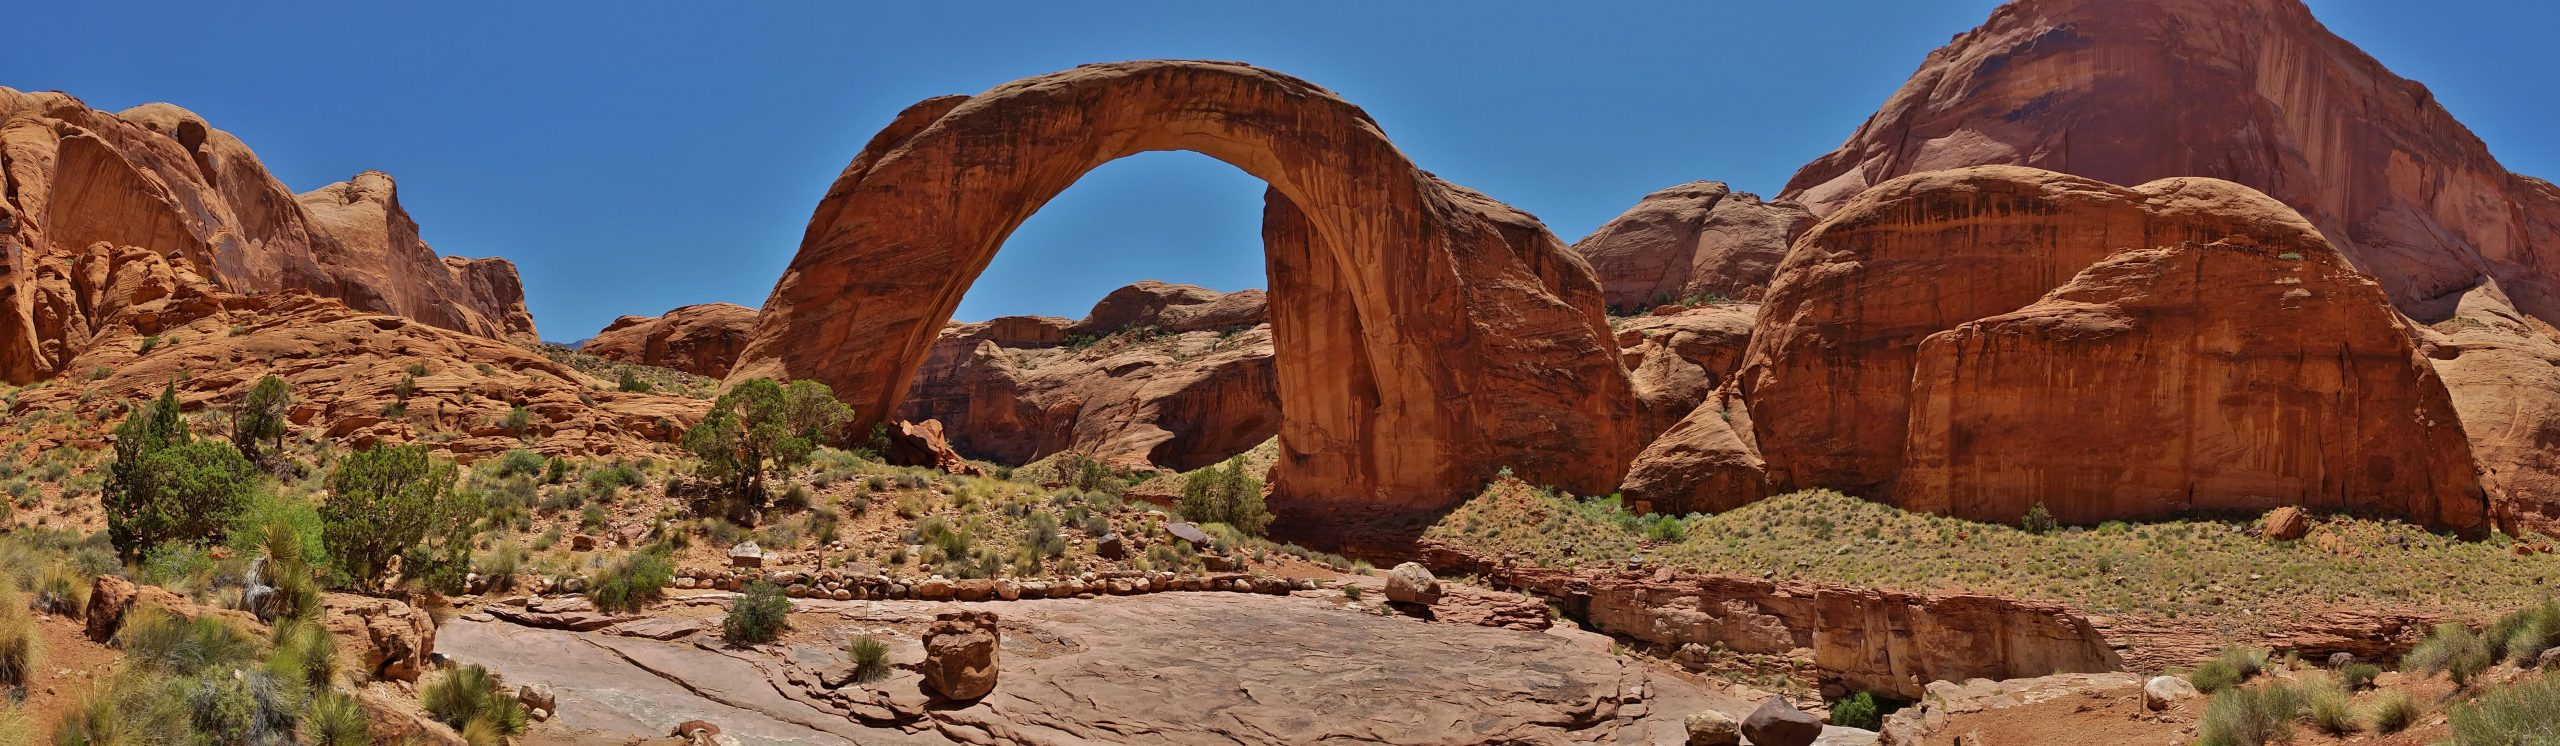 The span of Rainbow Bridge is approximately 290 ft tall, spans 275 ft and the top is 42 feet thick and 33 feet wide.